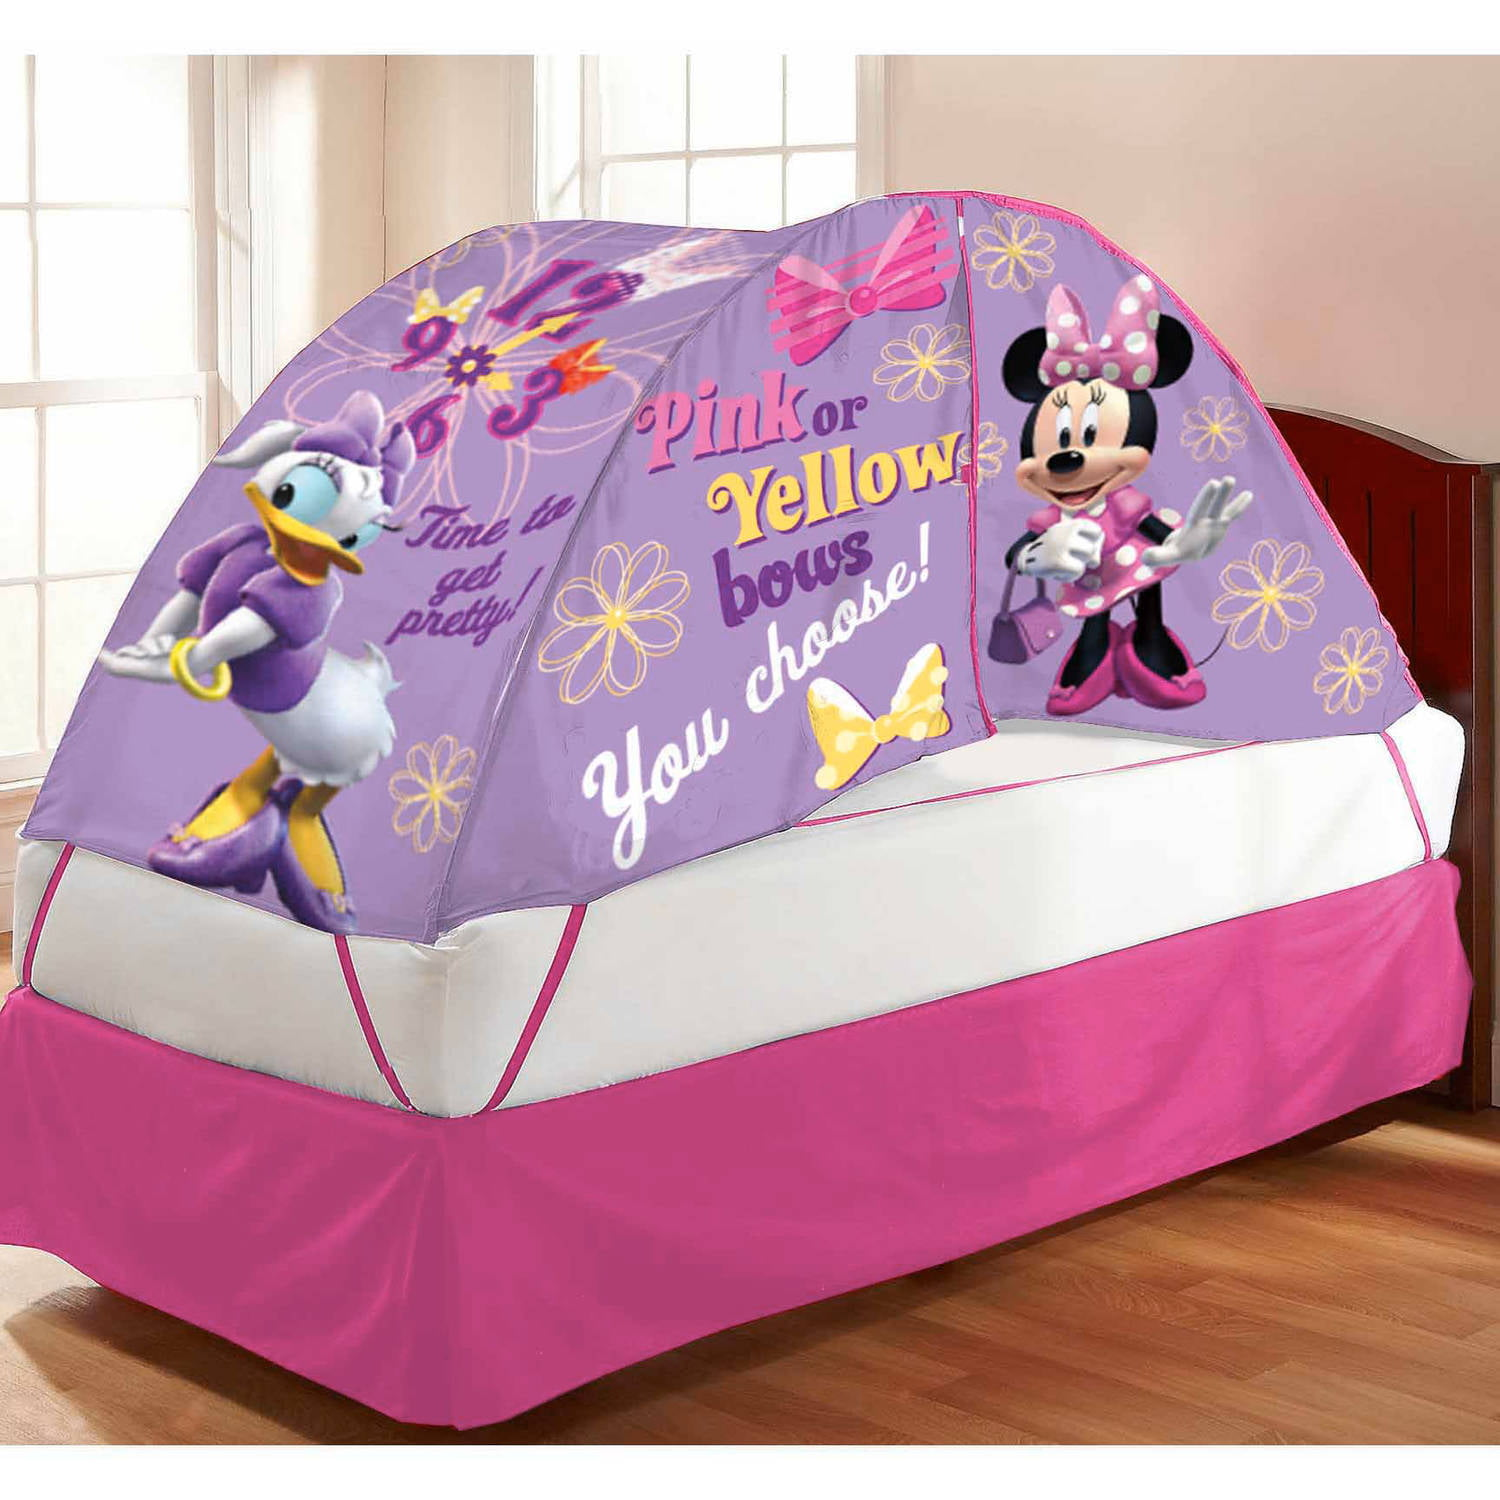 & Minnie Mouse Bed Tent with Pushlight - Walmart.com